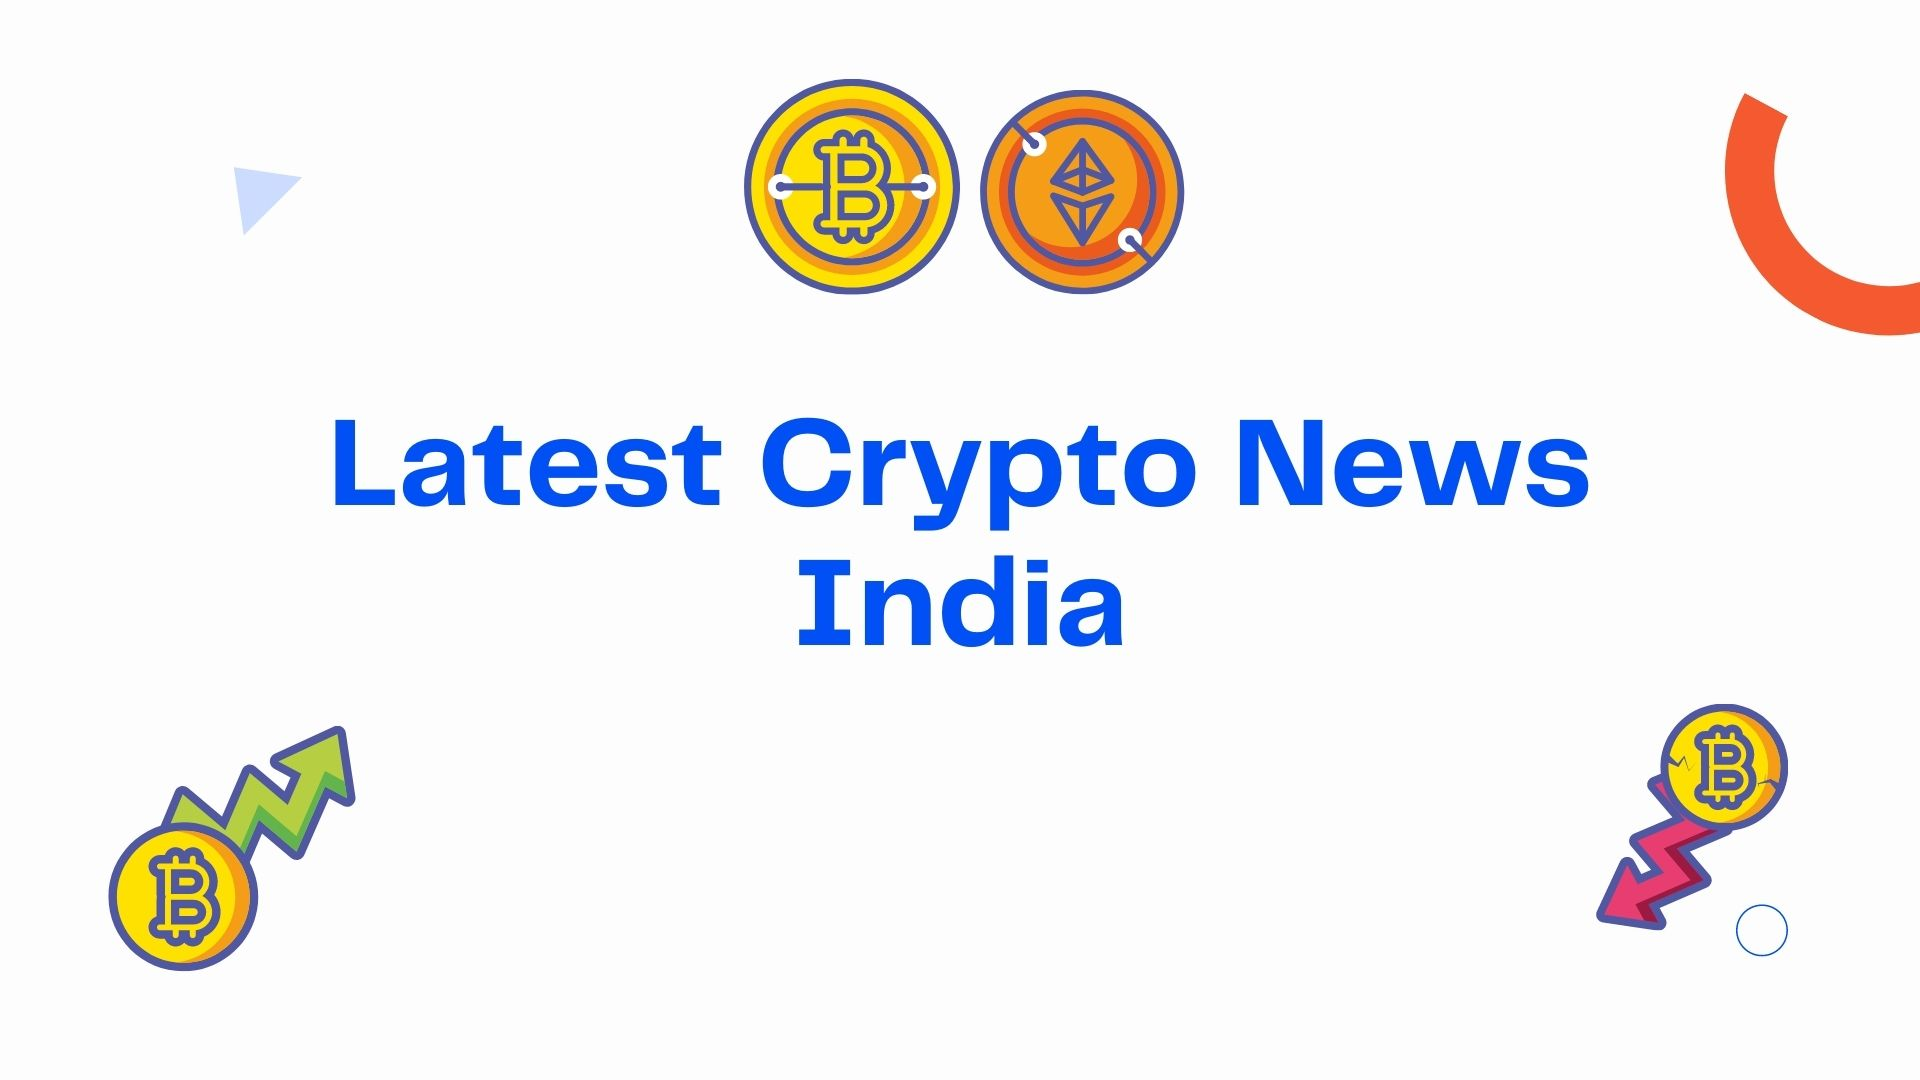 Latest Crypto News India